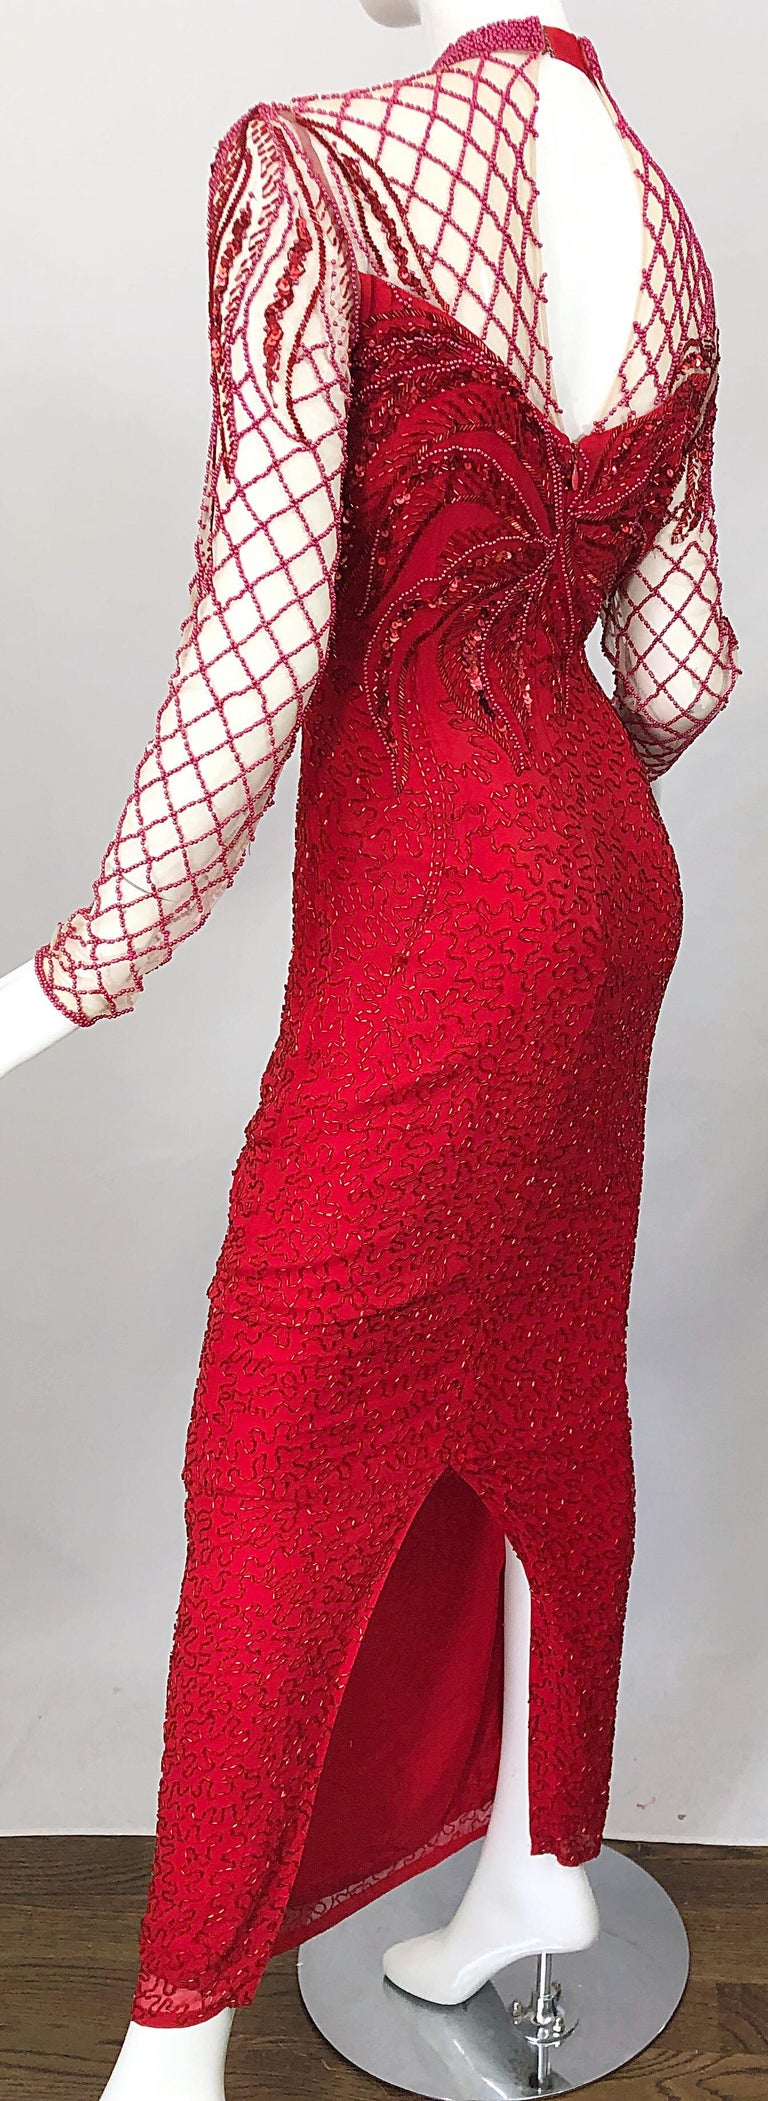 Vintage Oleg Cassini 1990s Lipstick Red Beaded Silk Chiffon 90s Evening Gown In Excellent Condition For Sale In Chicago, IL